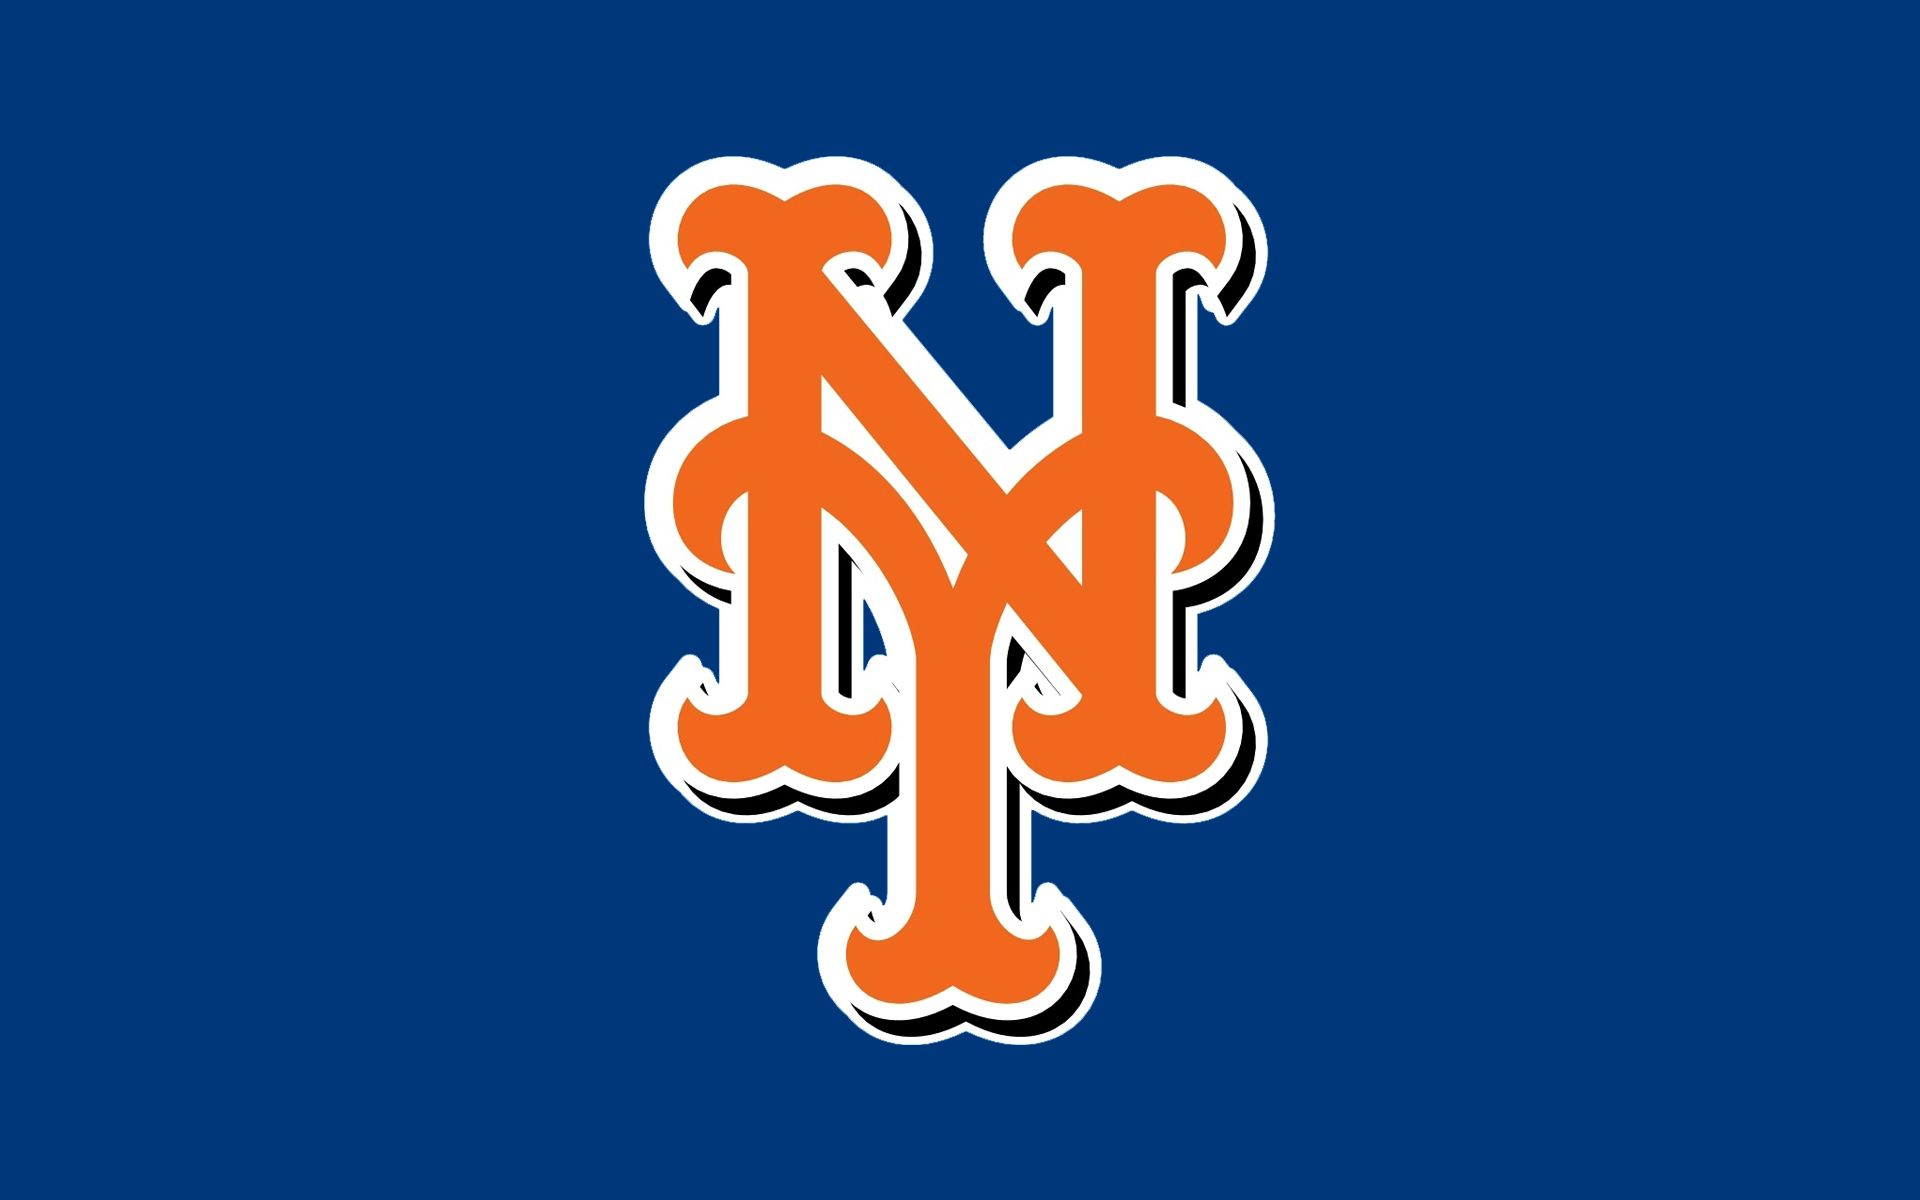 New York Mets Wallpaper Hd Background Download Desktop Iphones 1600 1200 New York Mets Desktop Wallpap New York Mets Logo New York Mets New York Mets Baseball